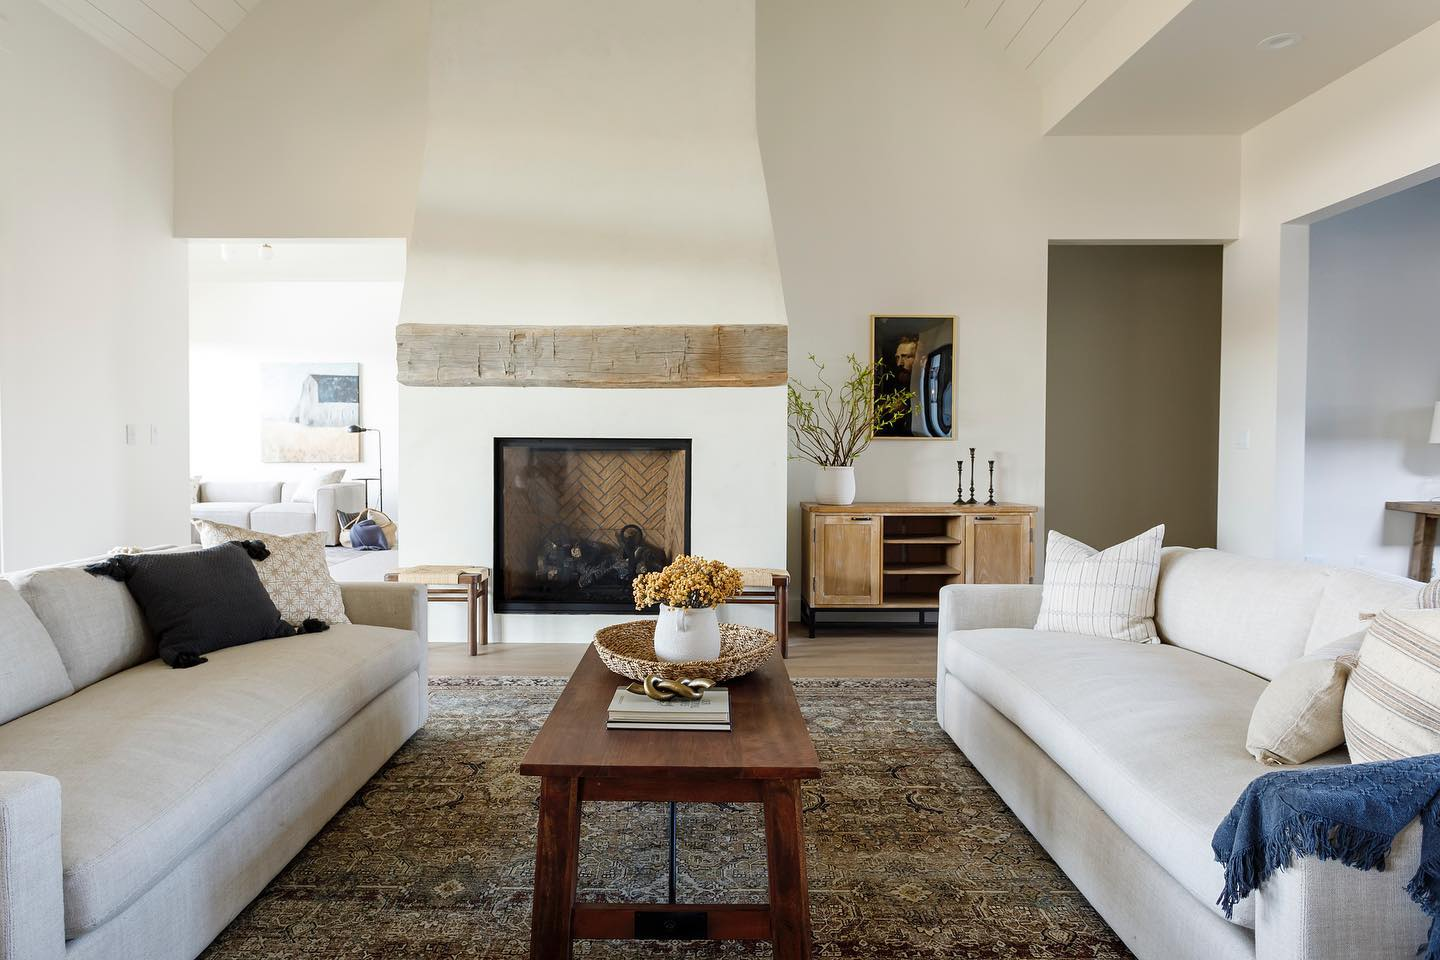 Open Space - Rustic Living Room Ideas